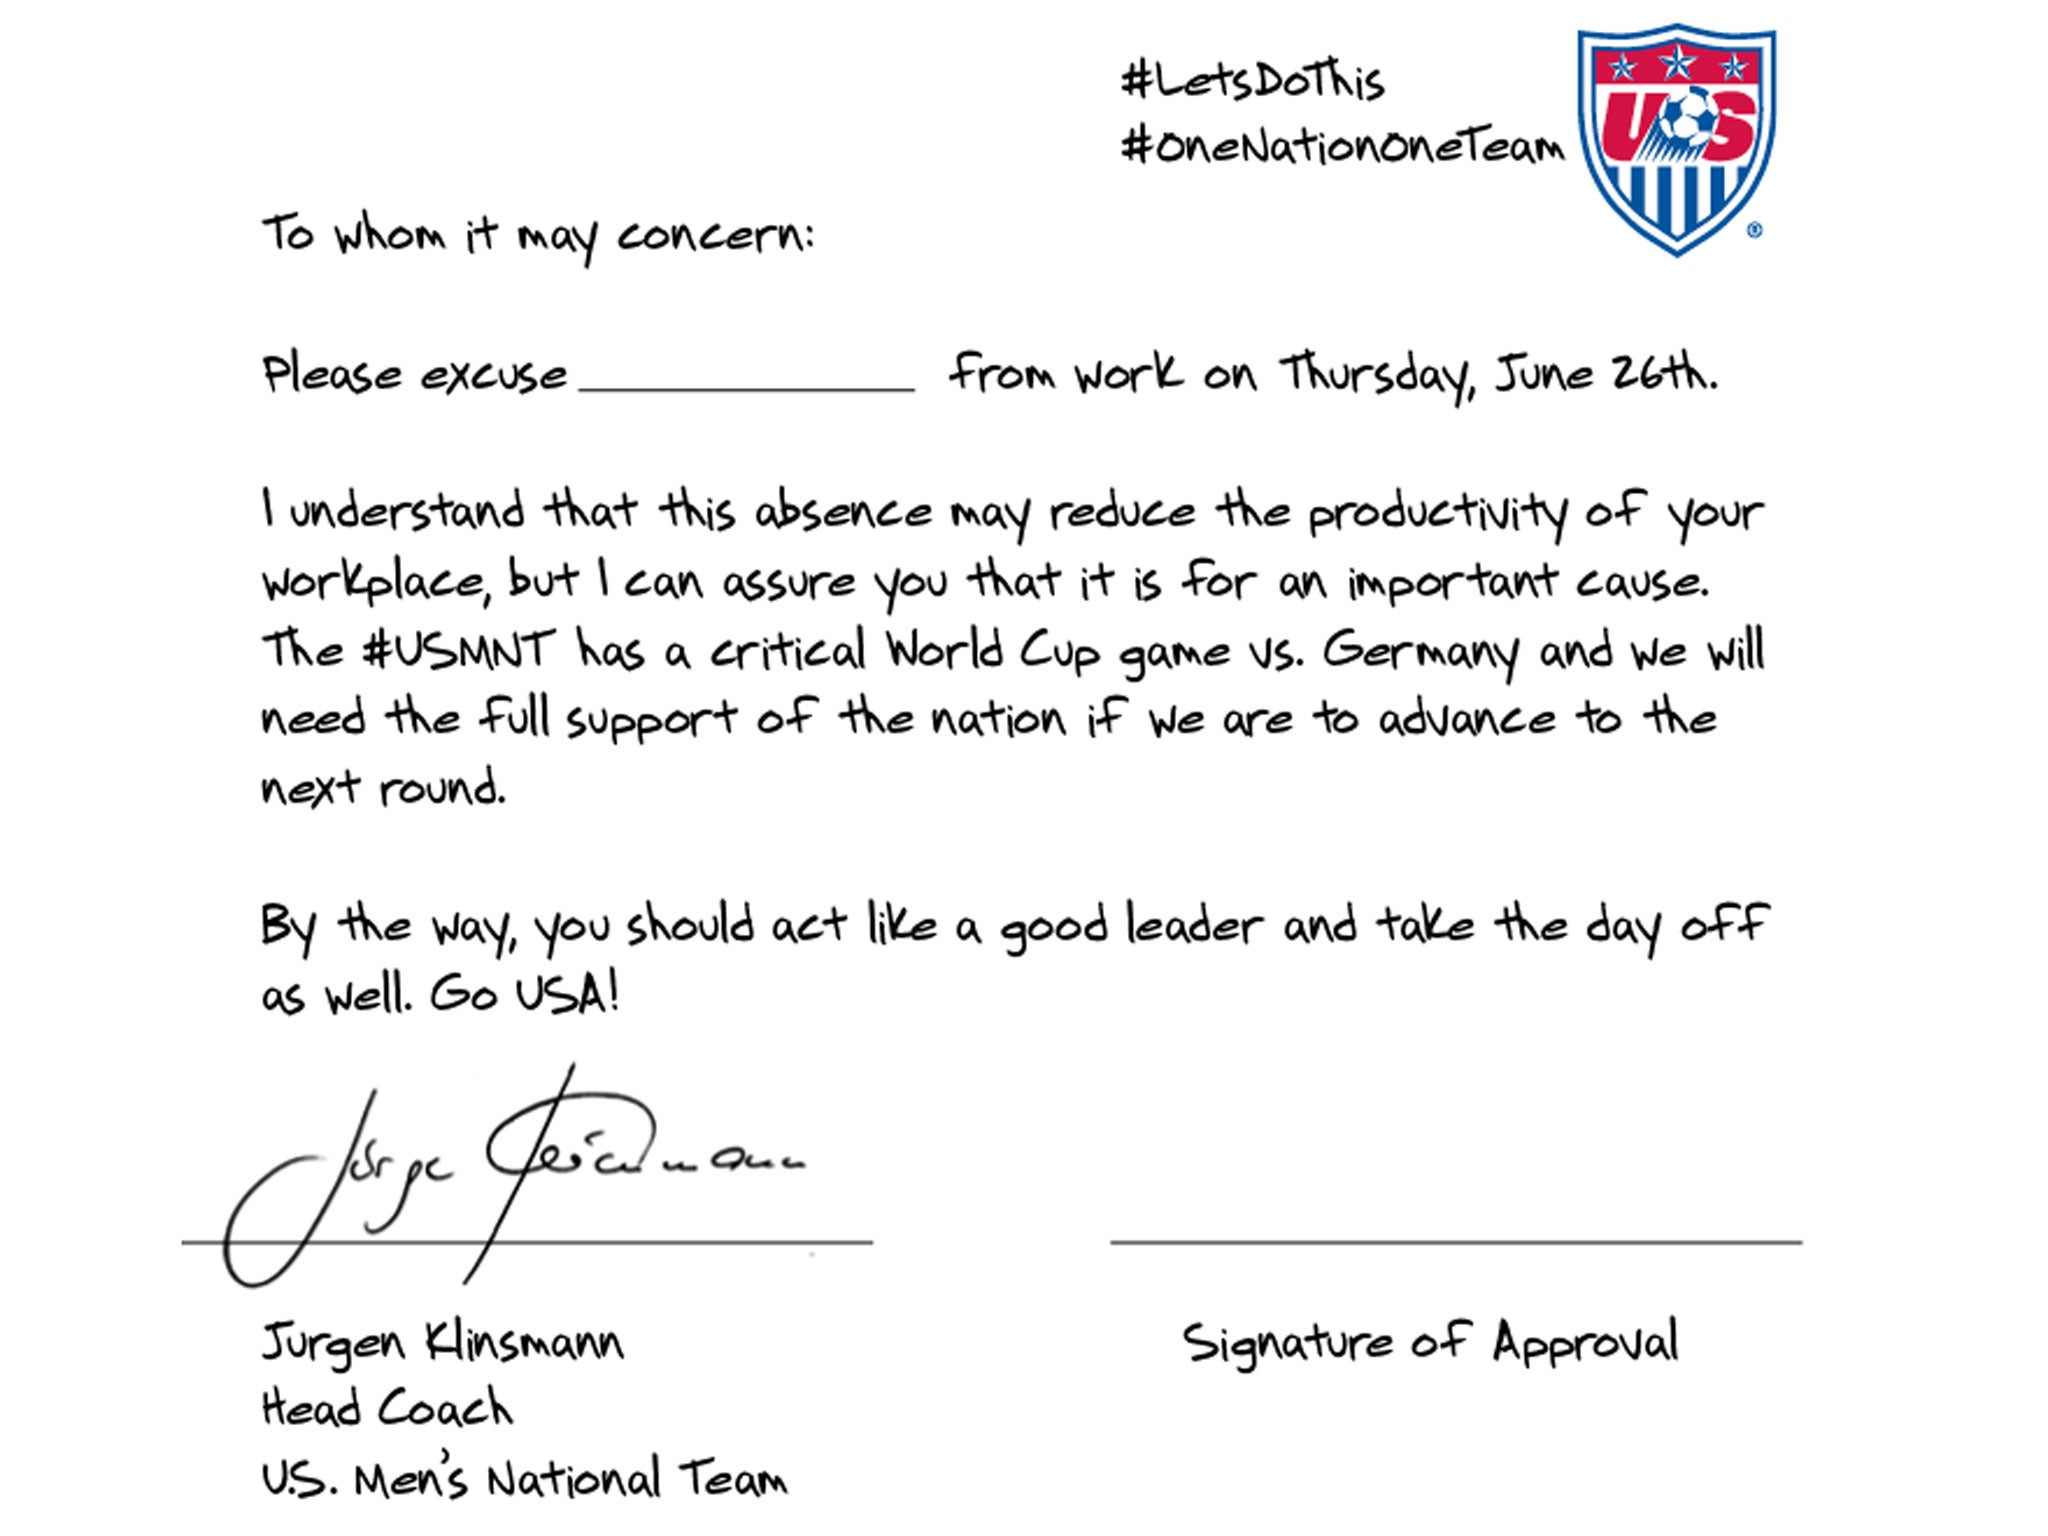 Usa vs germany world cup 2014 signed jurgen klinsmann note urges usa vs germany world cup 2014 signed jurgen klinsmann note urges bosses to give employees day off to support us soccer team the independent spiritdancerdesigns Gallery